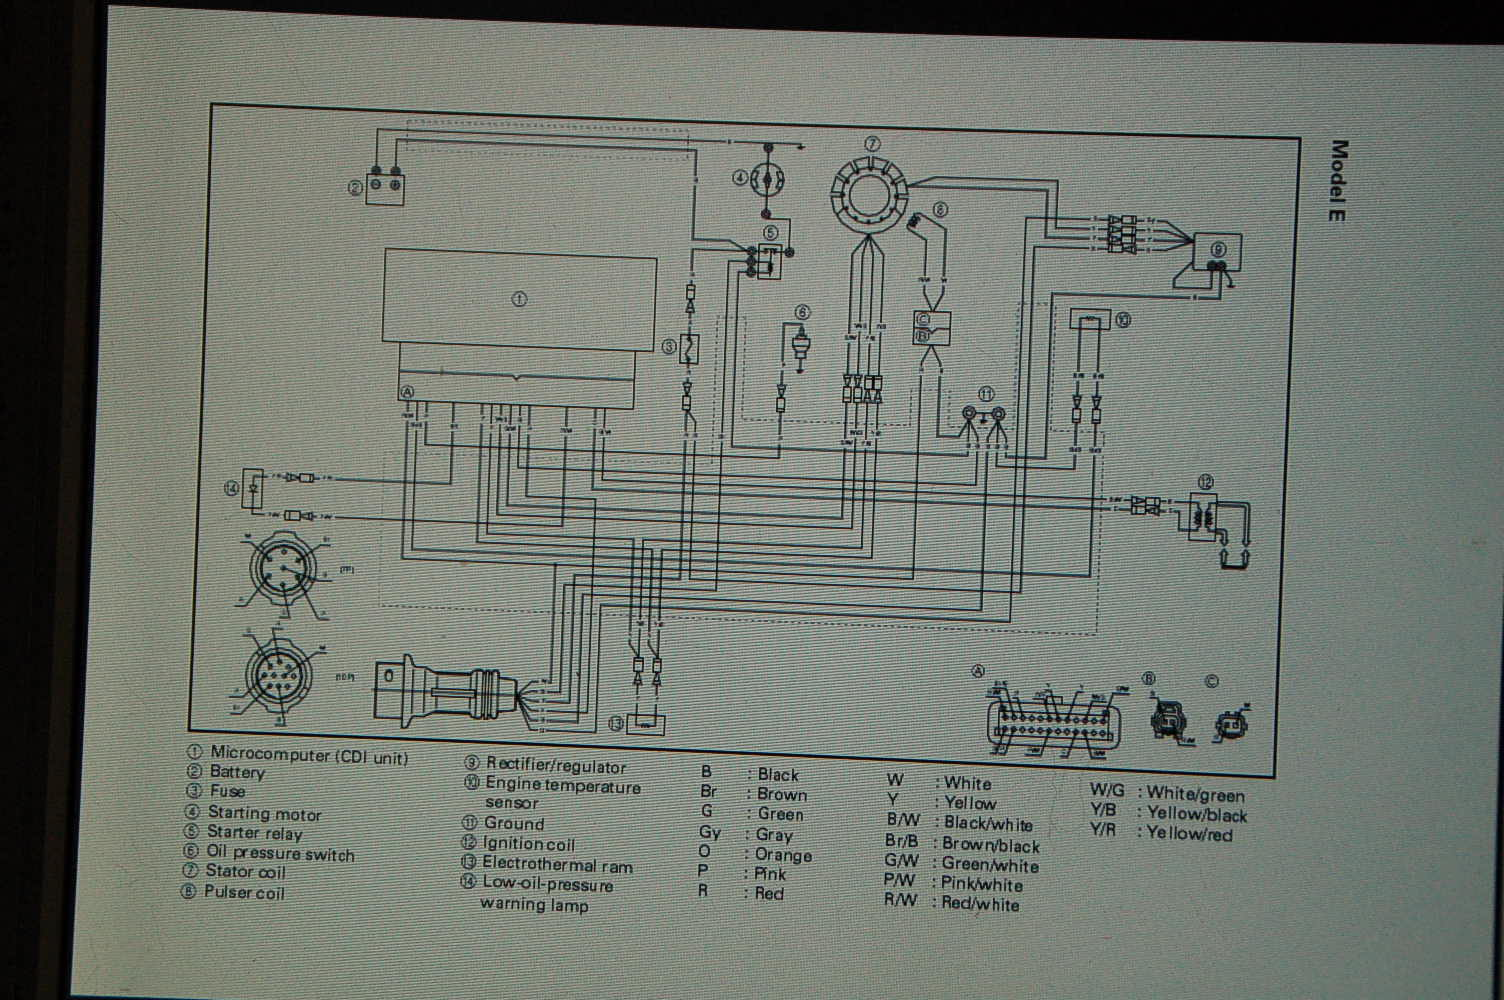 Yamaha Dt3 Wiring Diagram Free Download Wiring Diagram Schematic